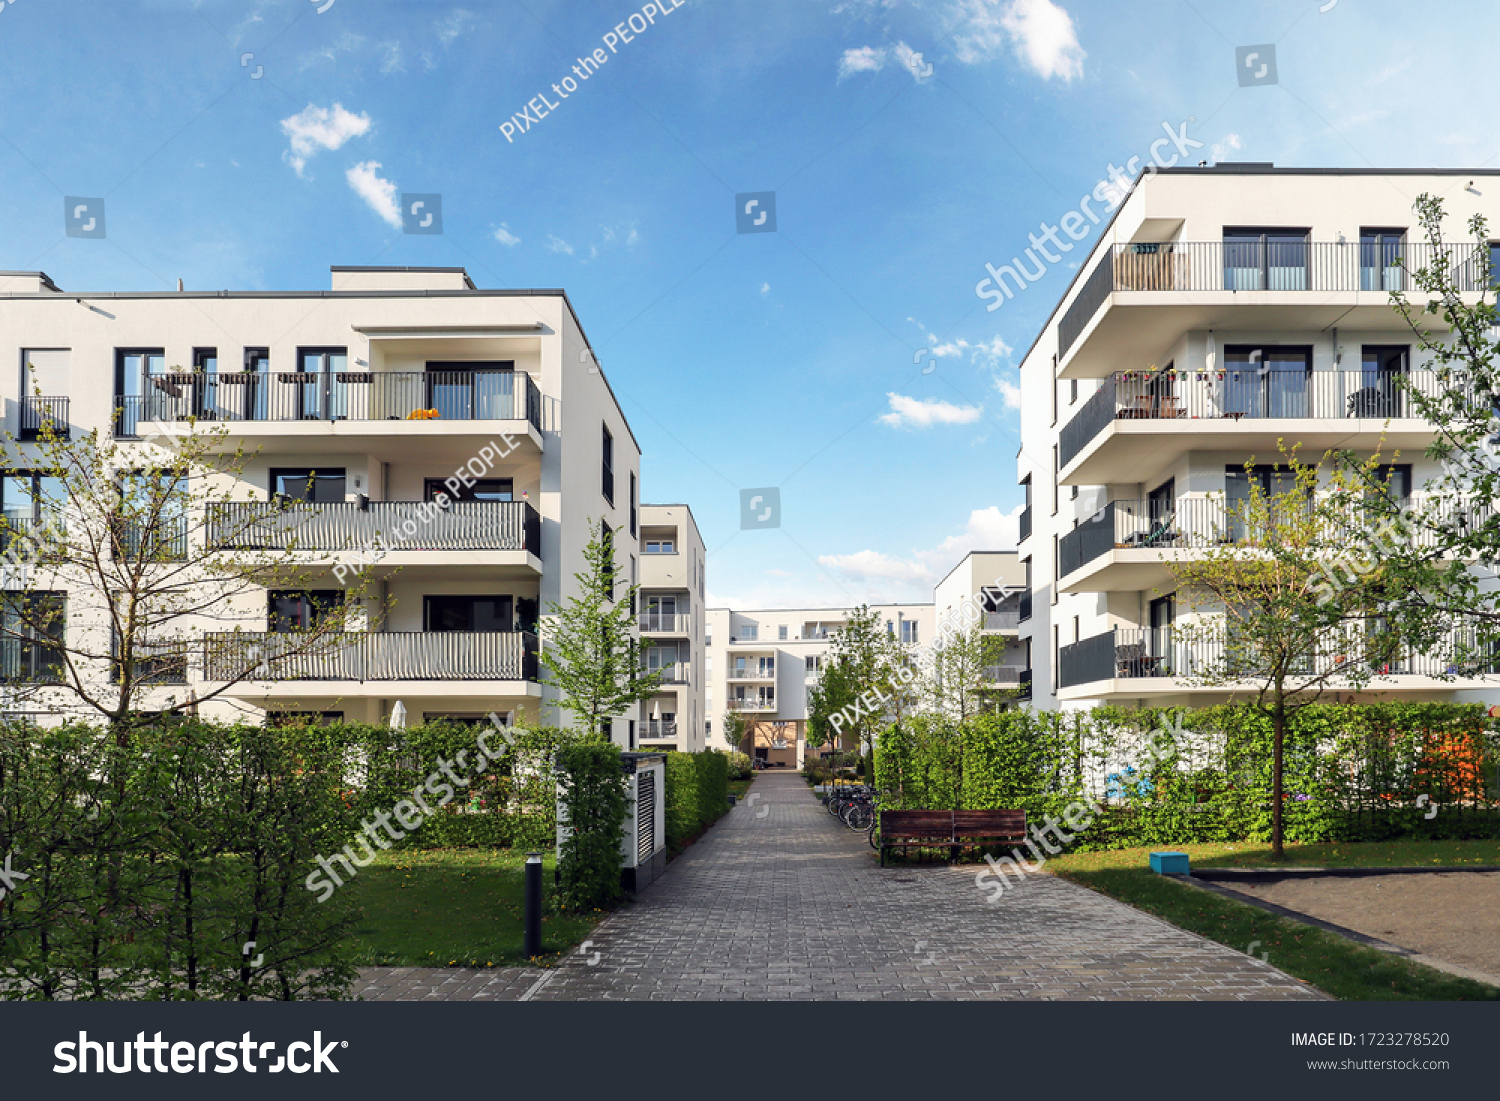 Cityscape of a residential area with modern apartment buildings, new green urban landscape in the city #1723278520